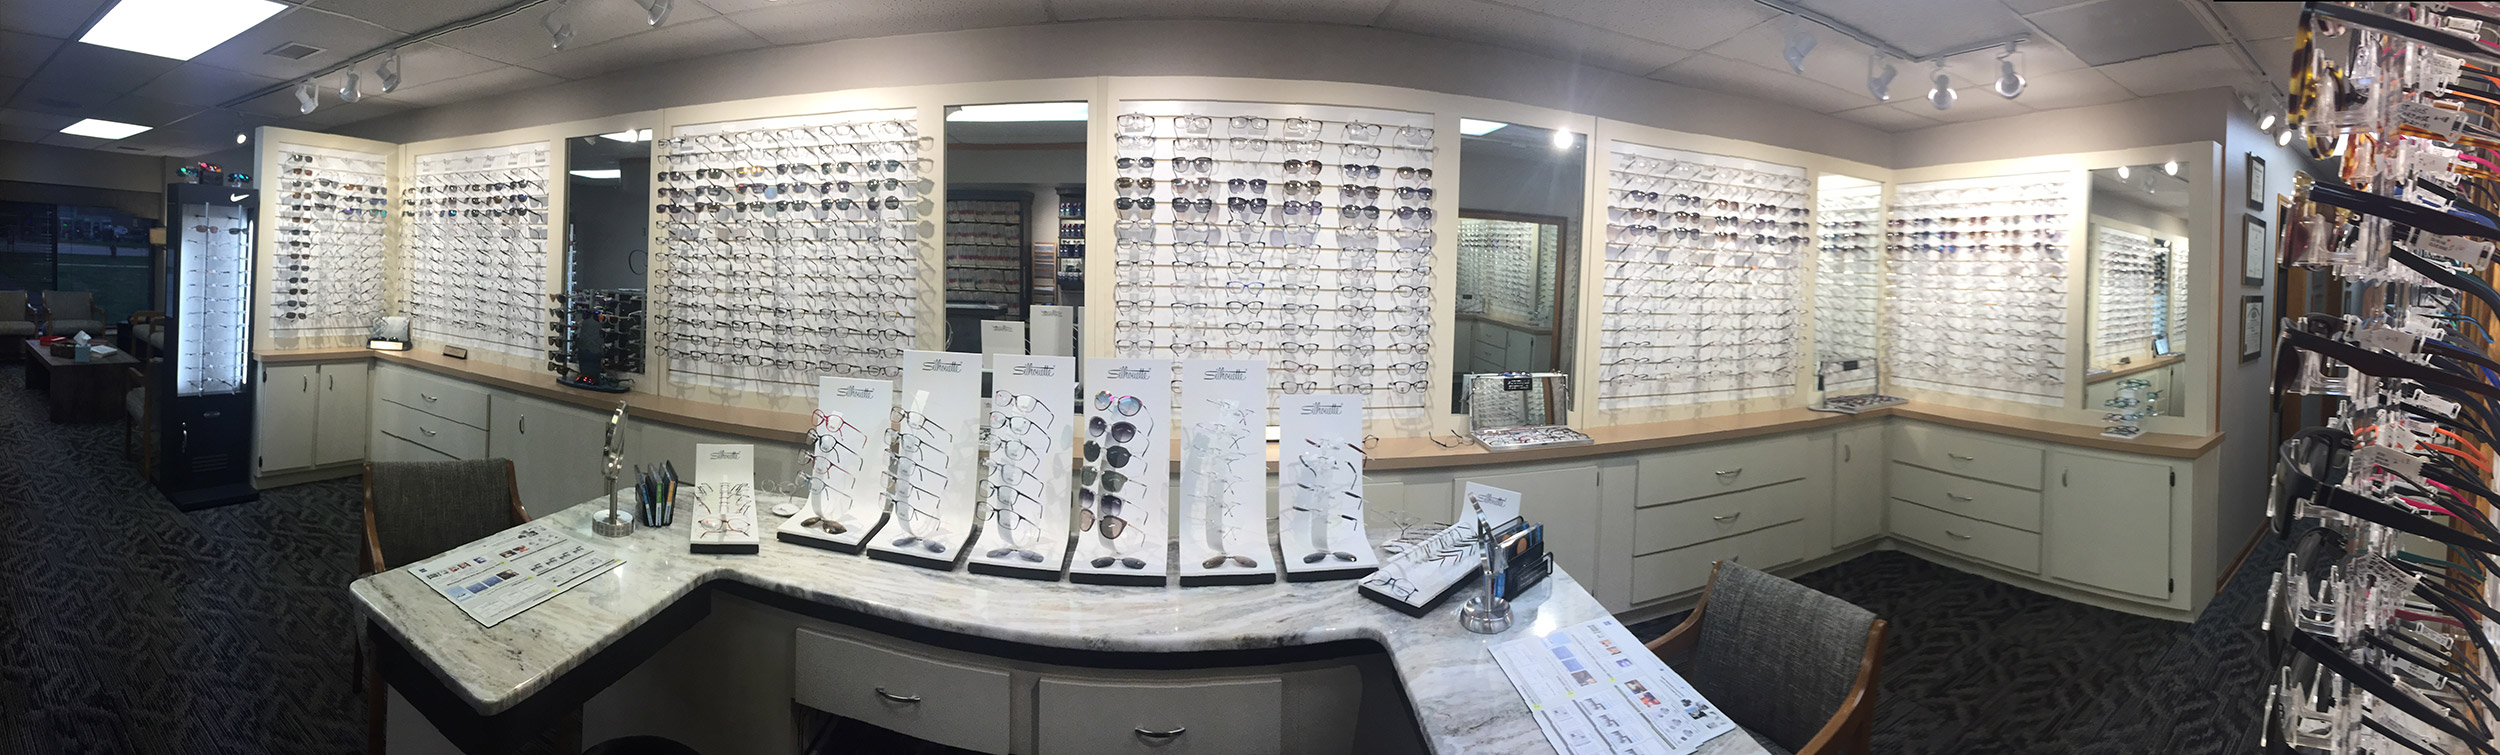 Shelby Township Mi Eye Care Office